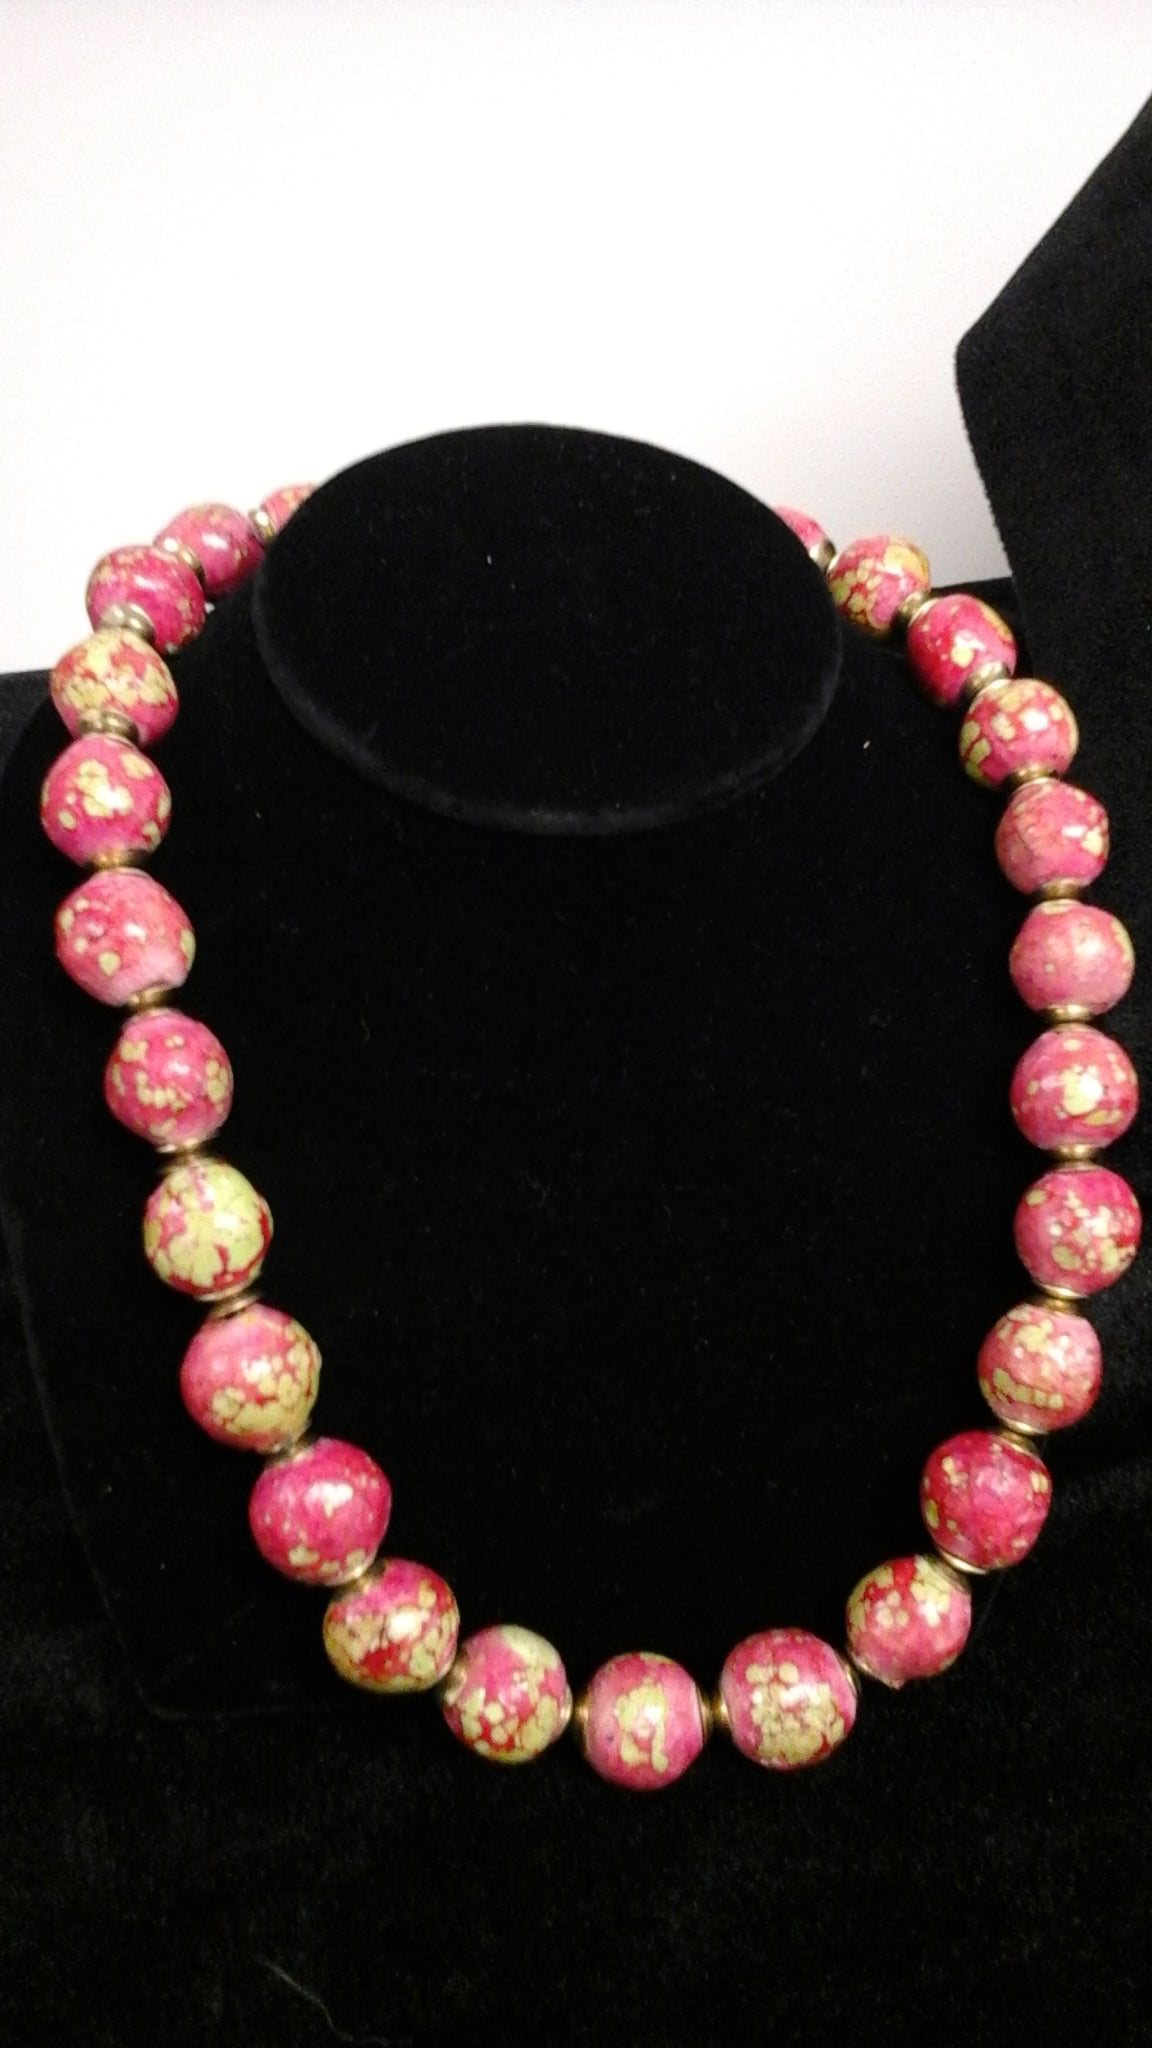 Hand made Clay bead necklace